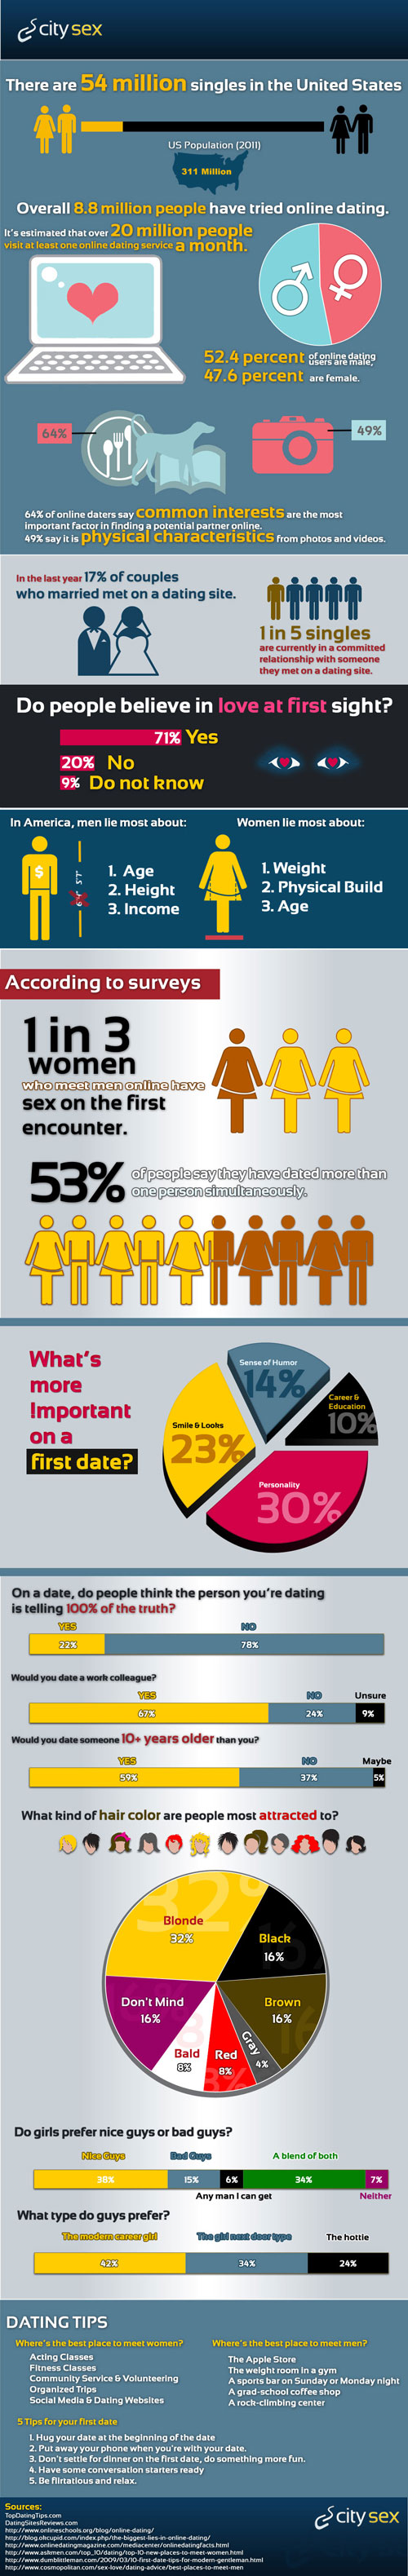 Online dating lies statistics